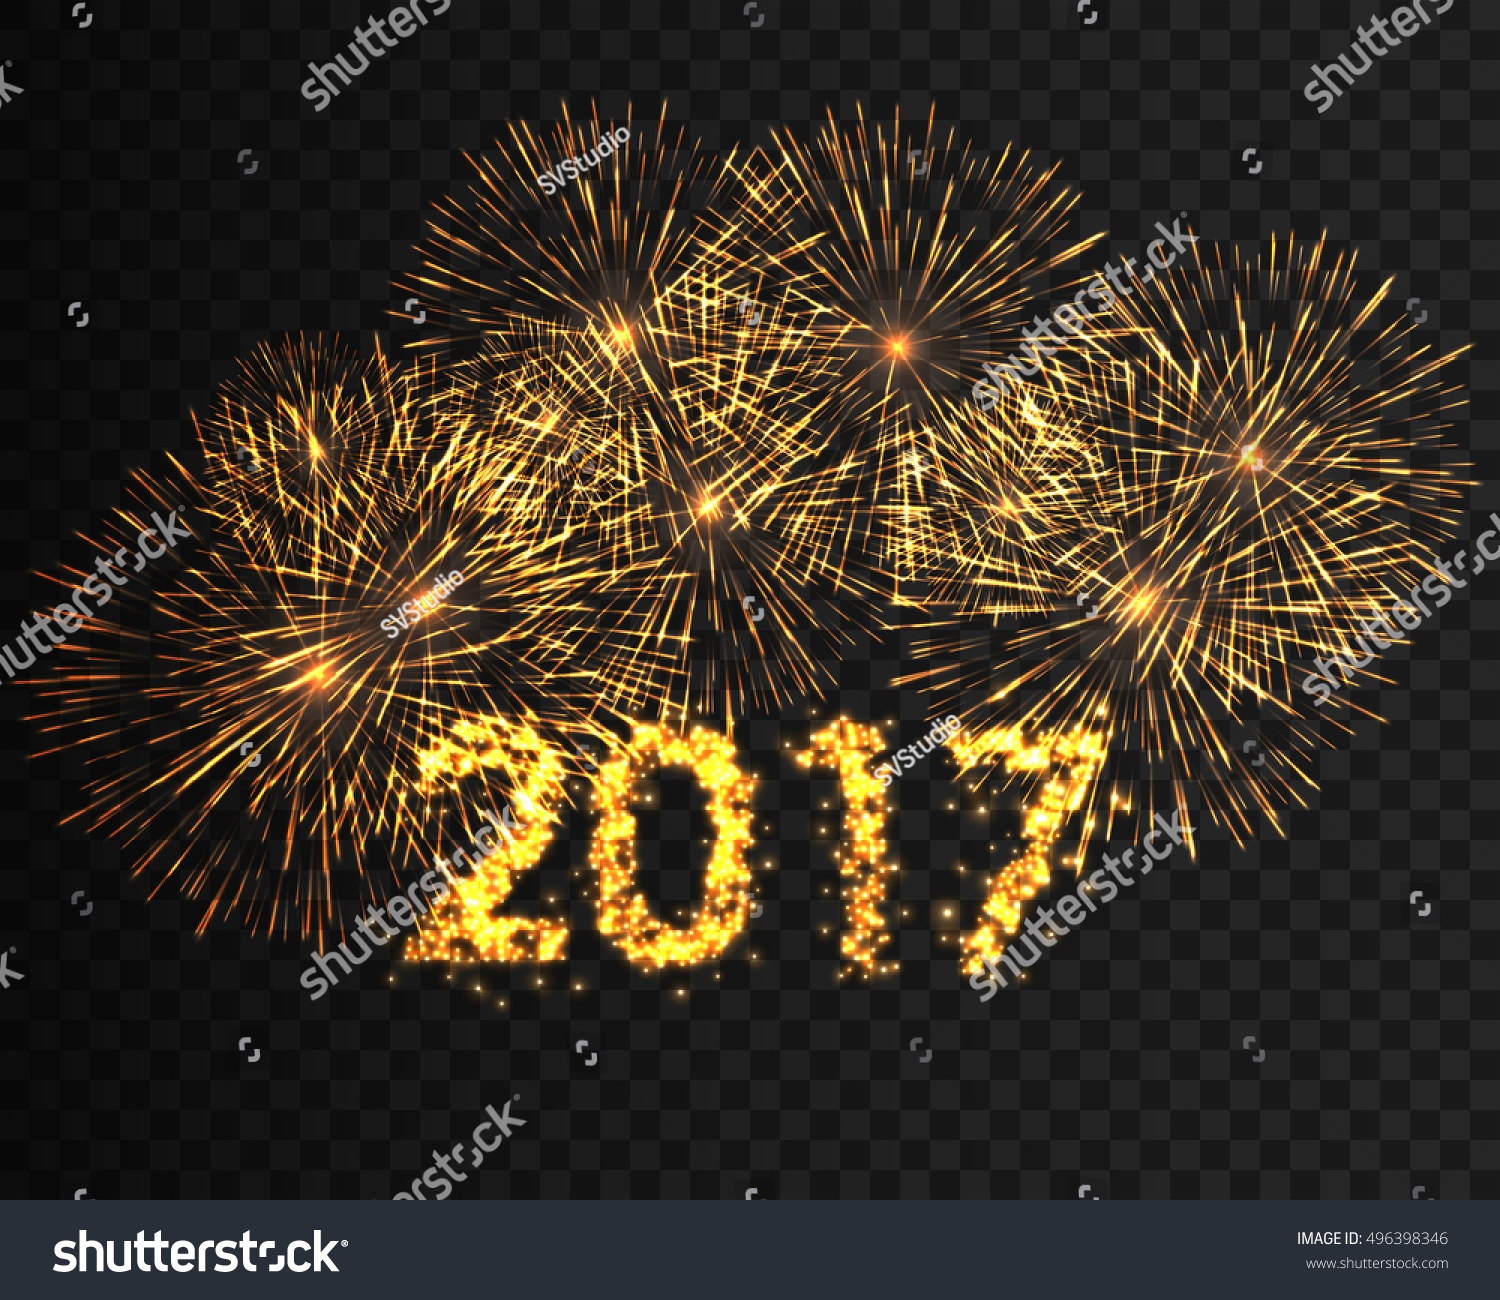 Happy New Year 2017 background. Calendar decoration new year 2017. Greeting card new year 2017. Chinese 2017 calendar template for the new year 2017 of rooster. Vector illustration new year 2017 eps10